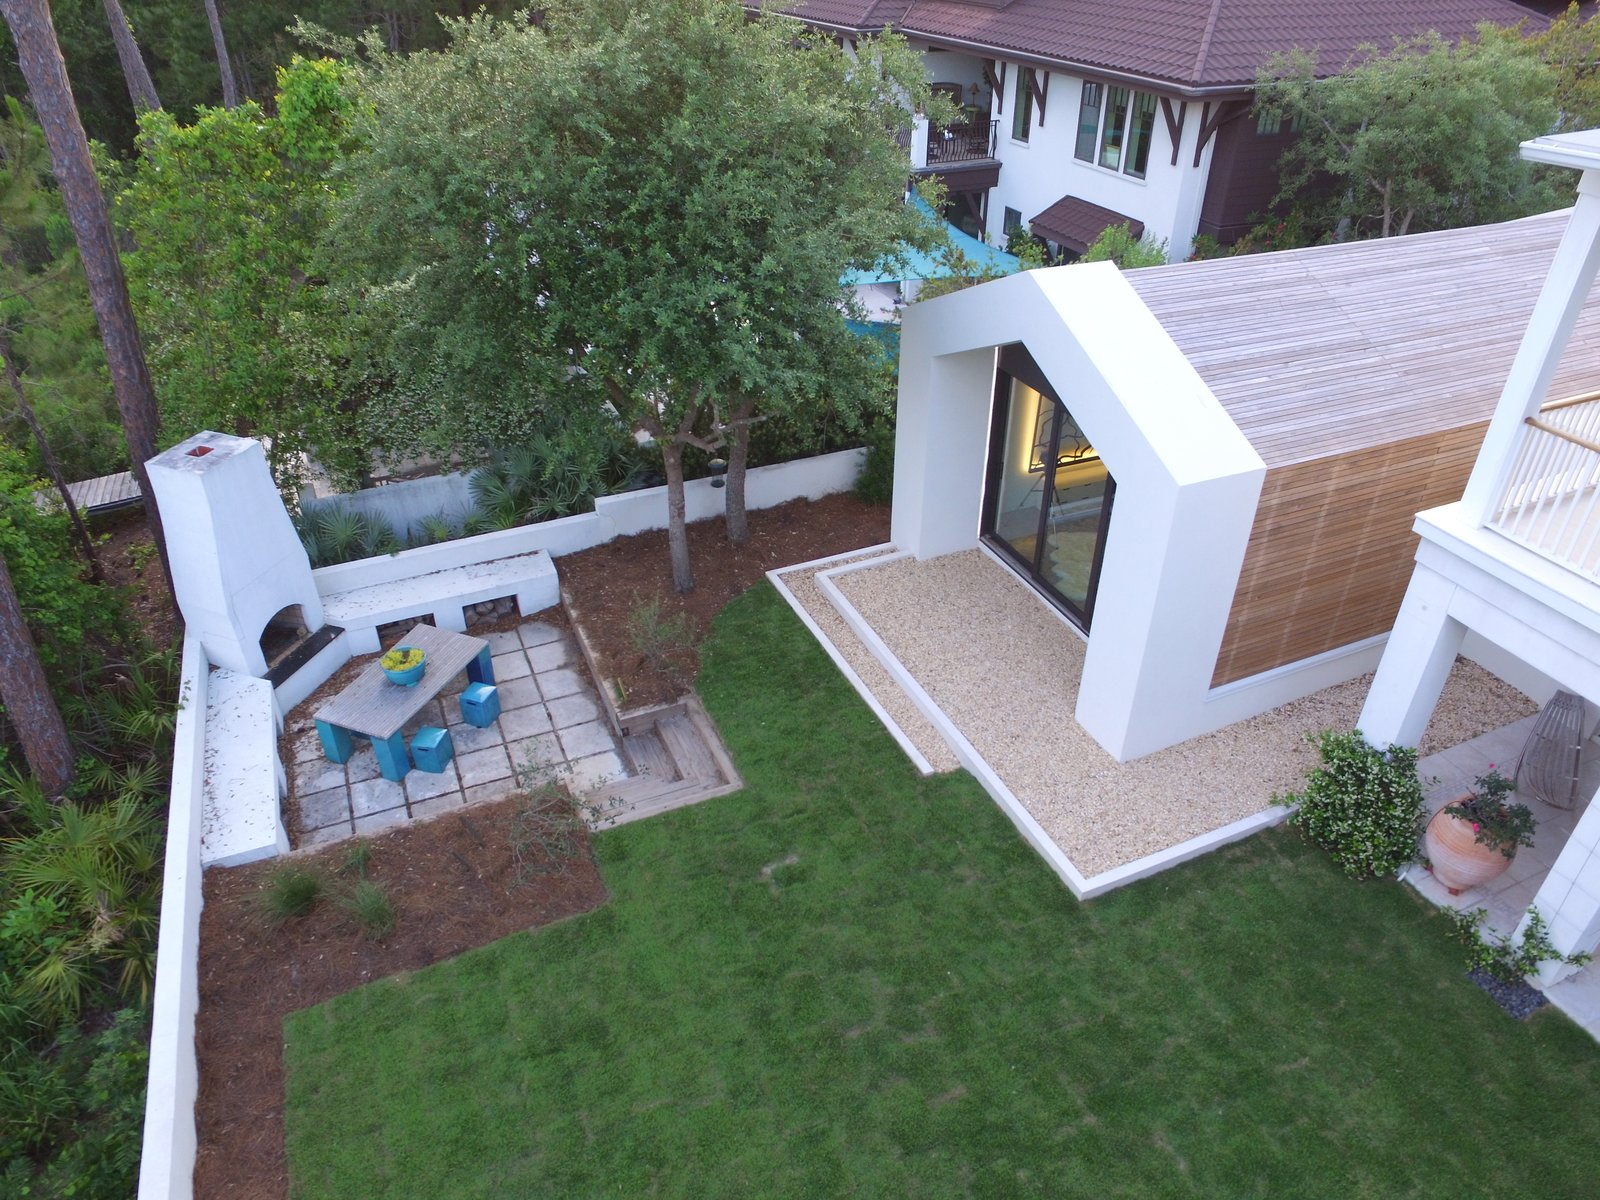 The Bunker Addition by McWhorter Vallee Design Inc.